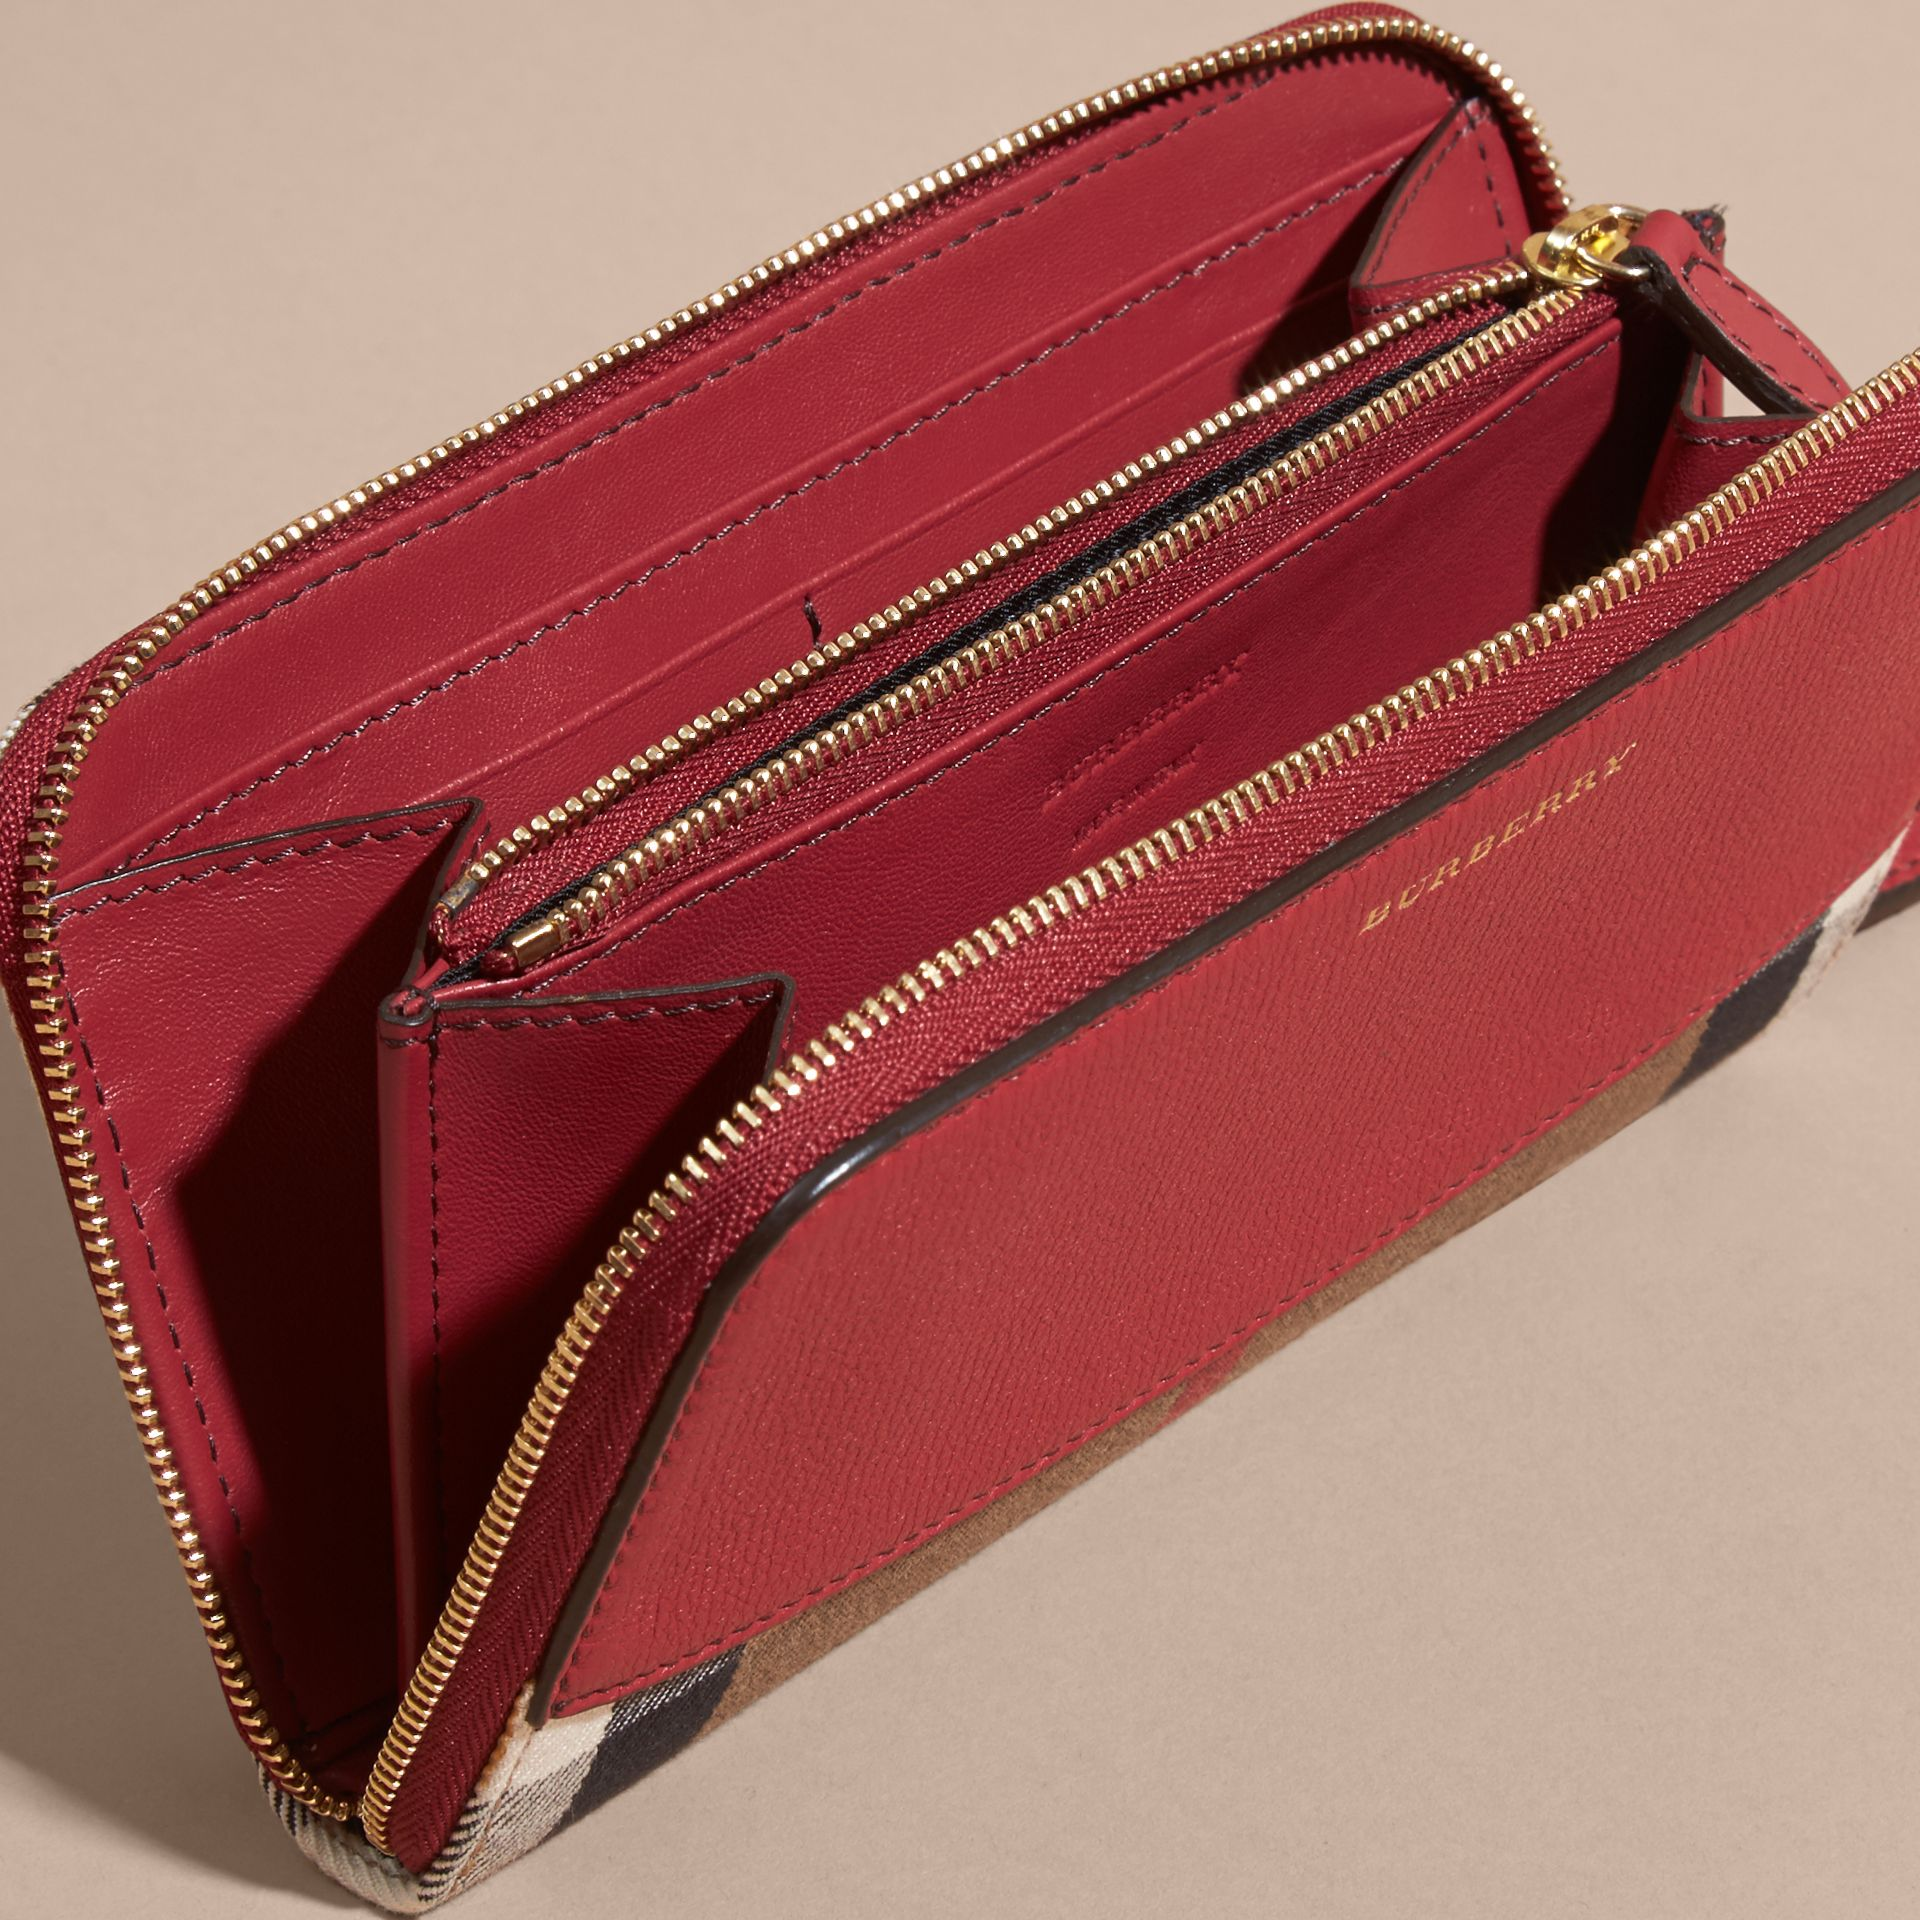 House Check and Leather Ziparound Wallet in Military Red - Women | Burberry Australia - gallery image 5